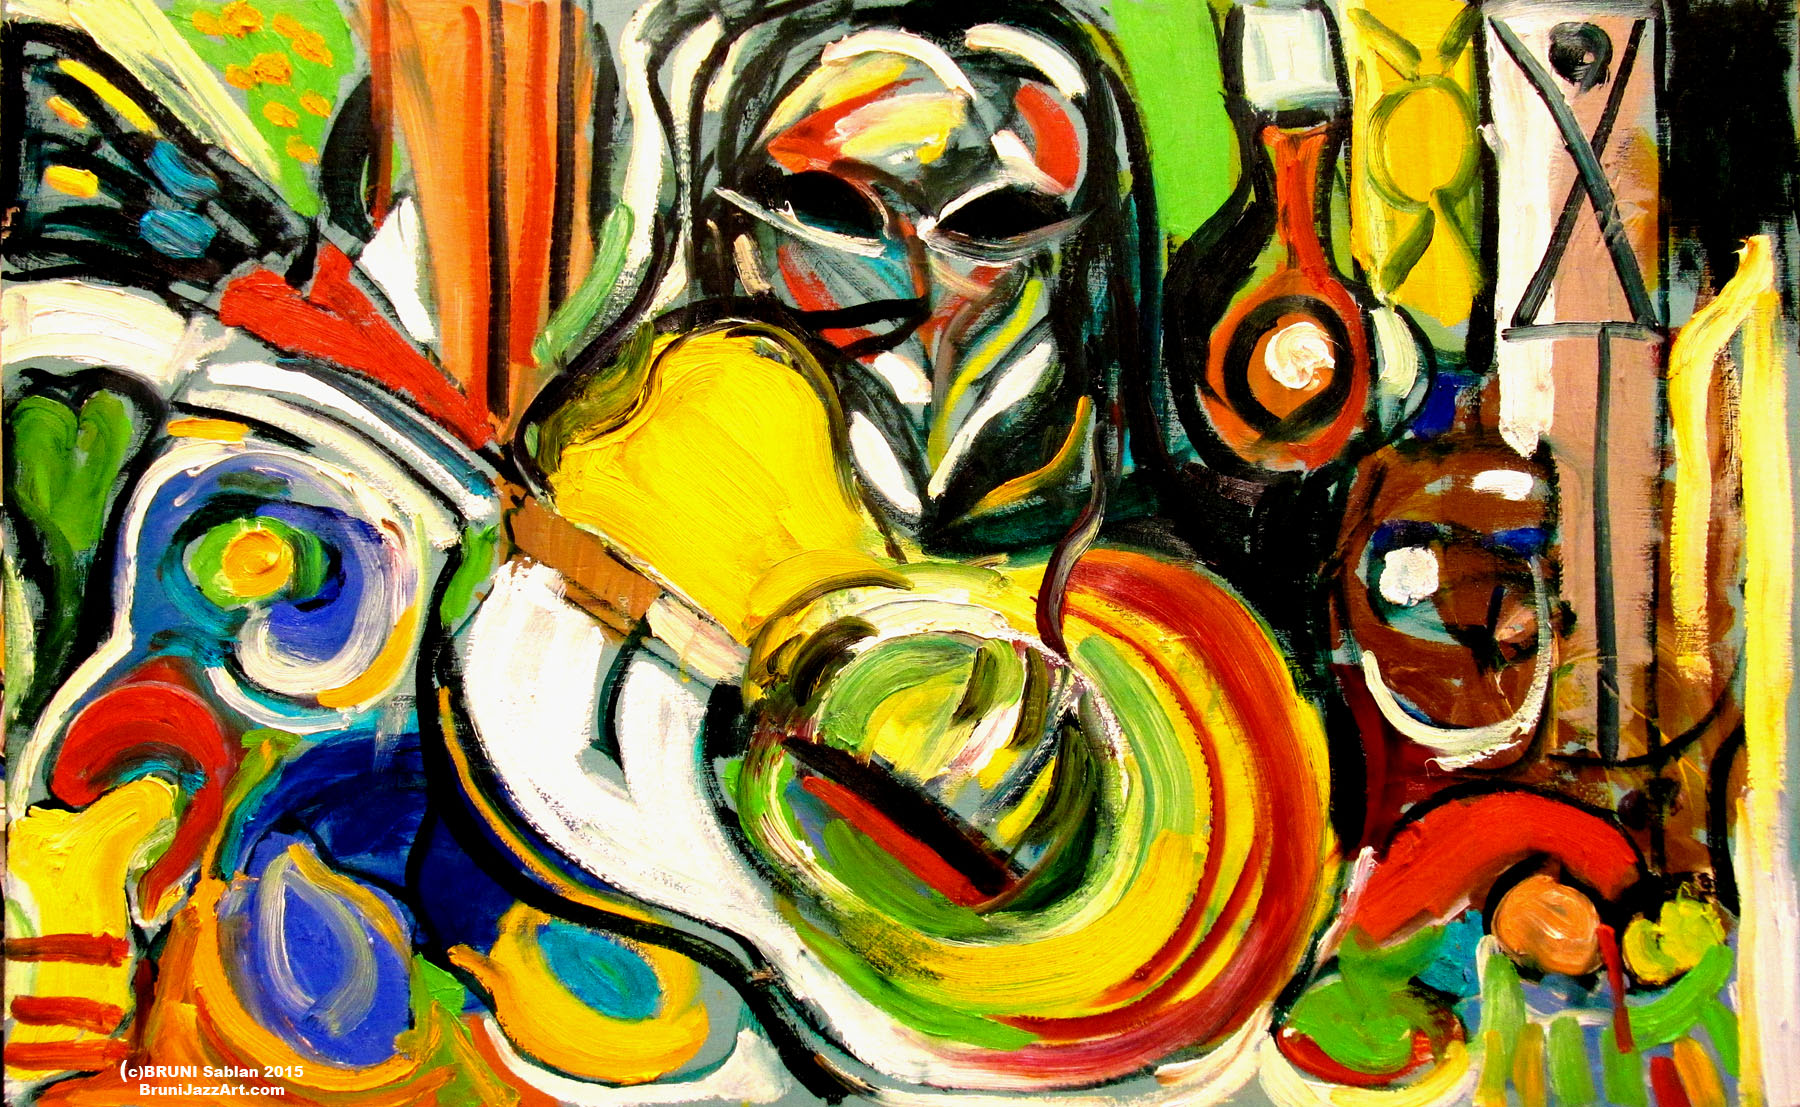 BRUNI Gallery - The Abstract Still life Gallery